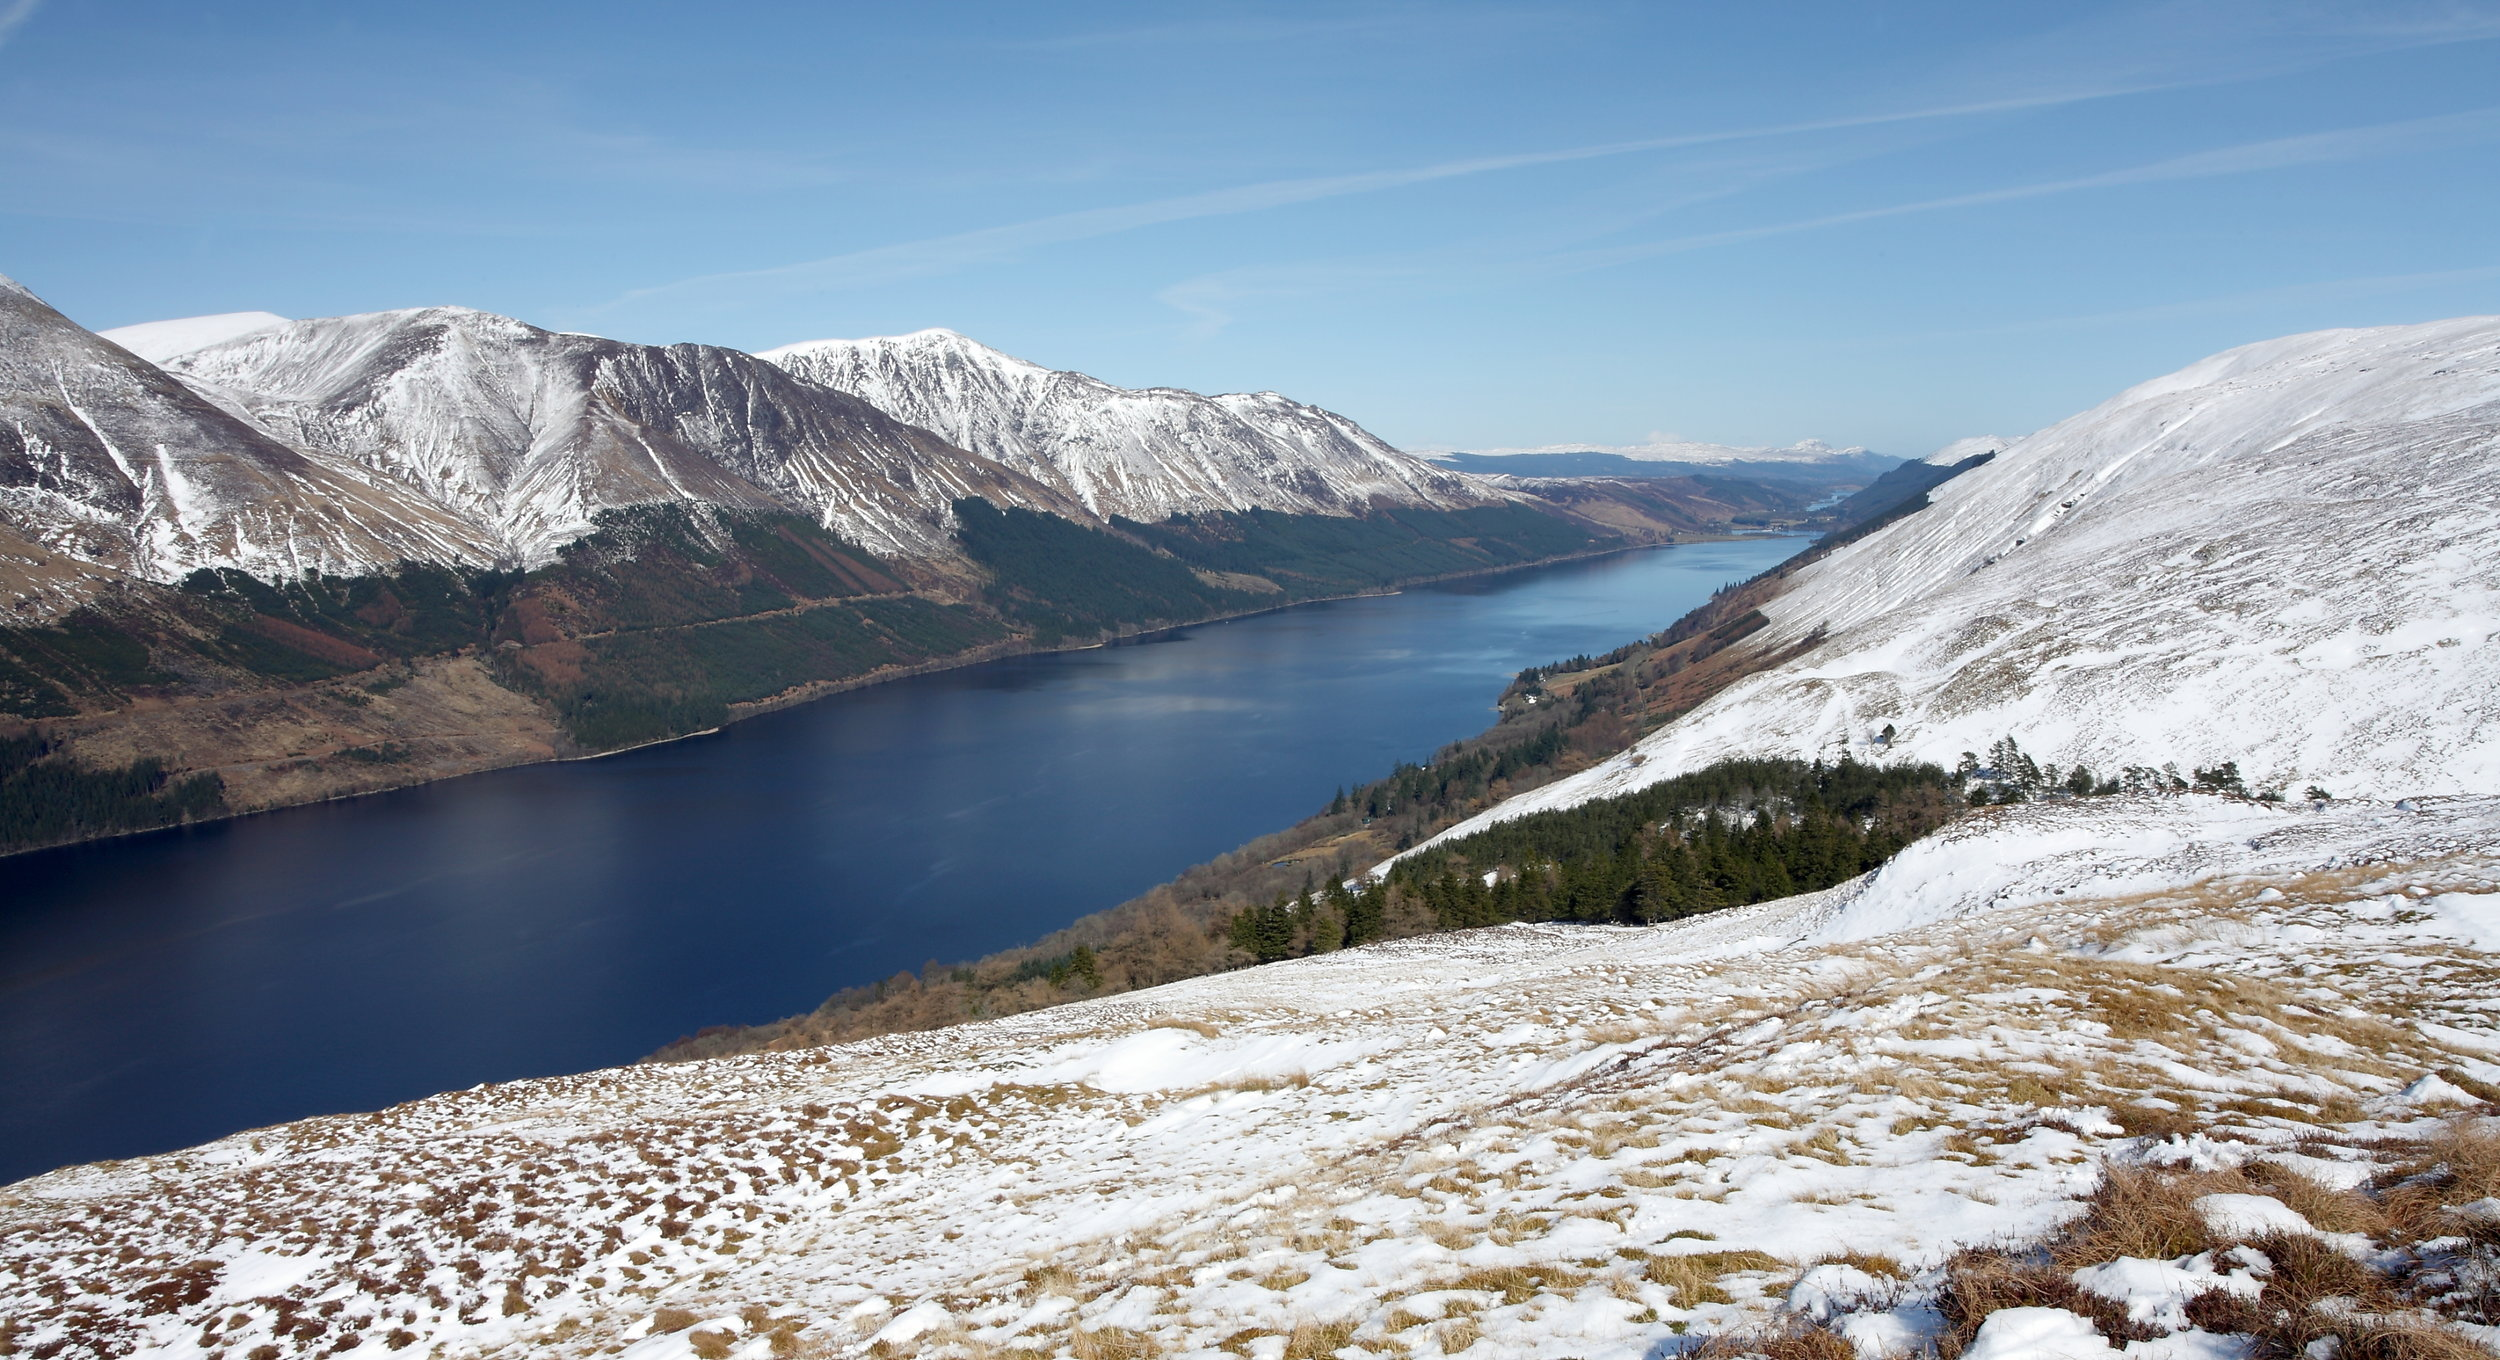 Loch Lochy - winter 2019